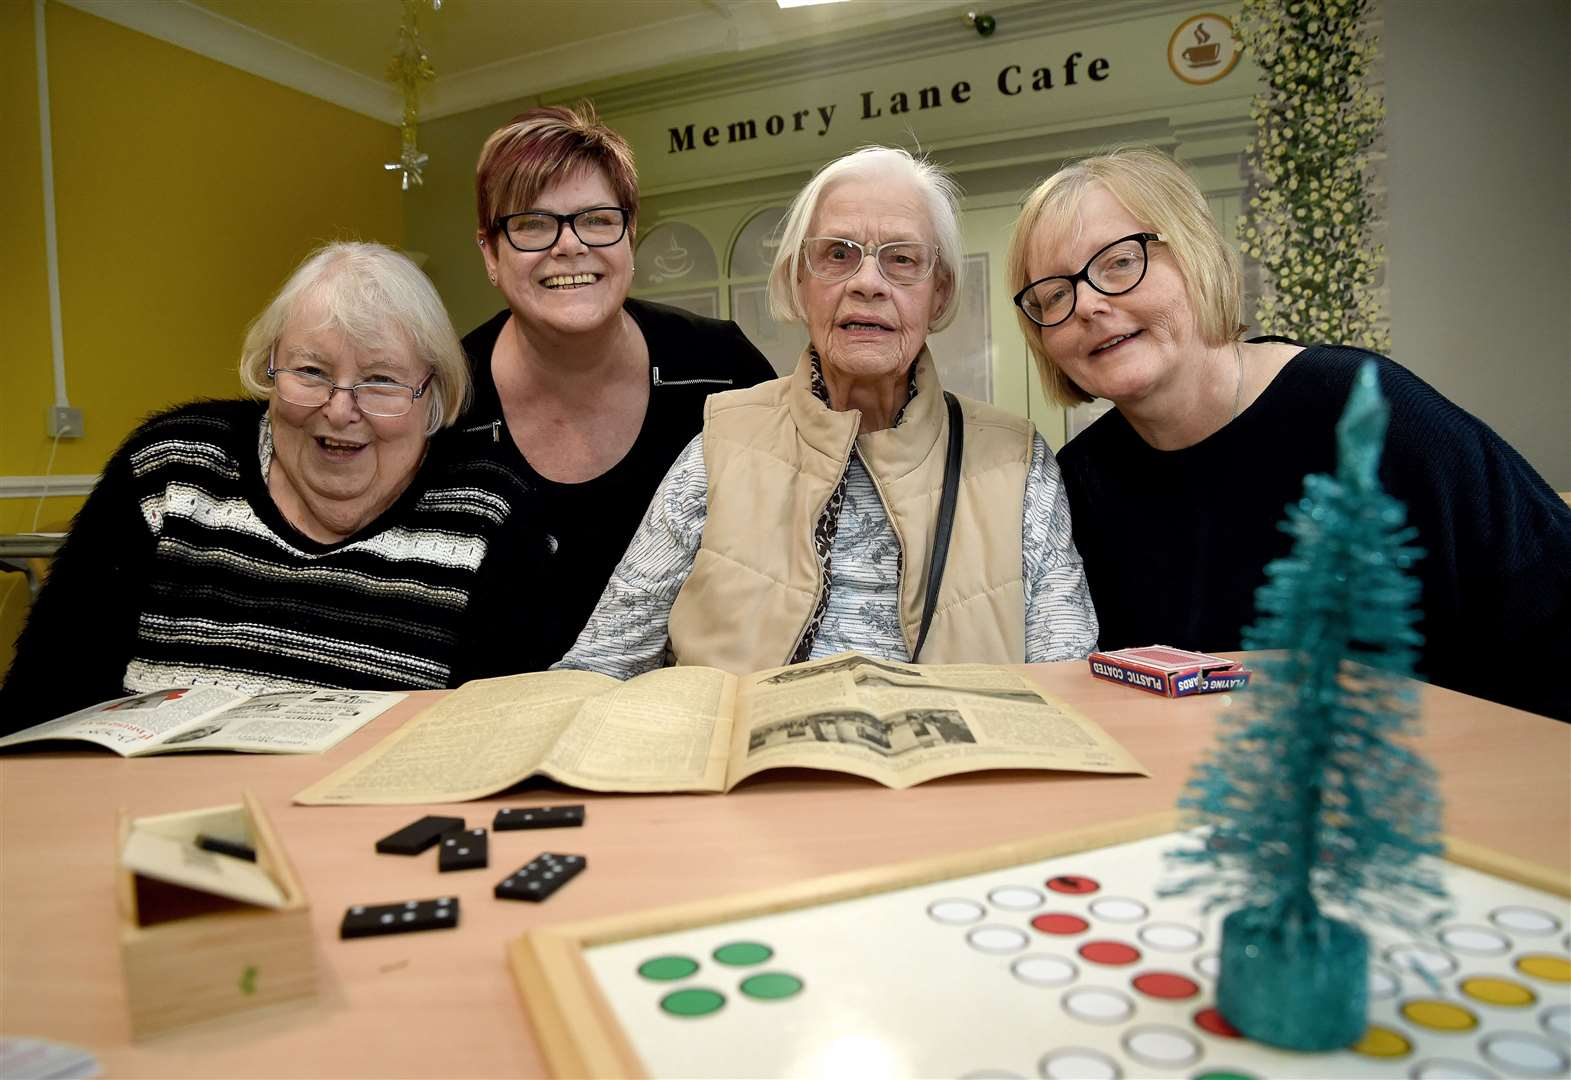 Grantham care home unveils 'Memory Lane' cafe for residents